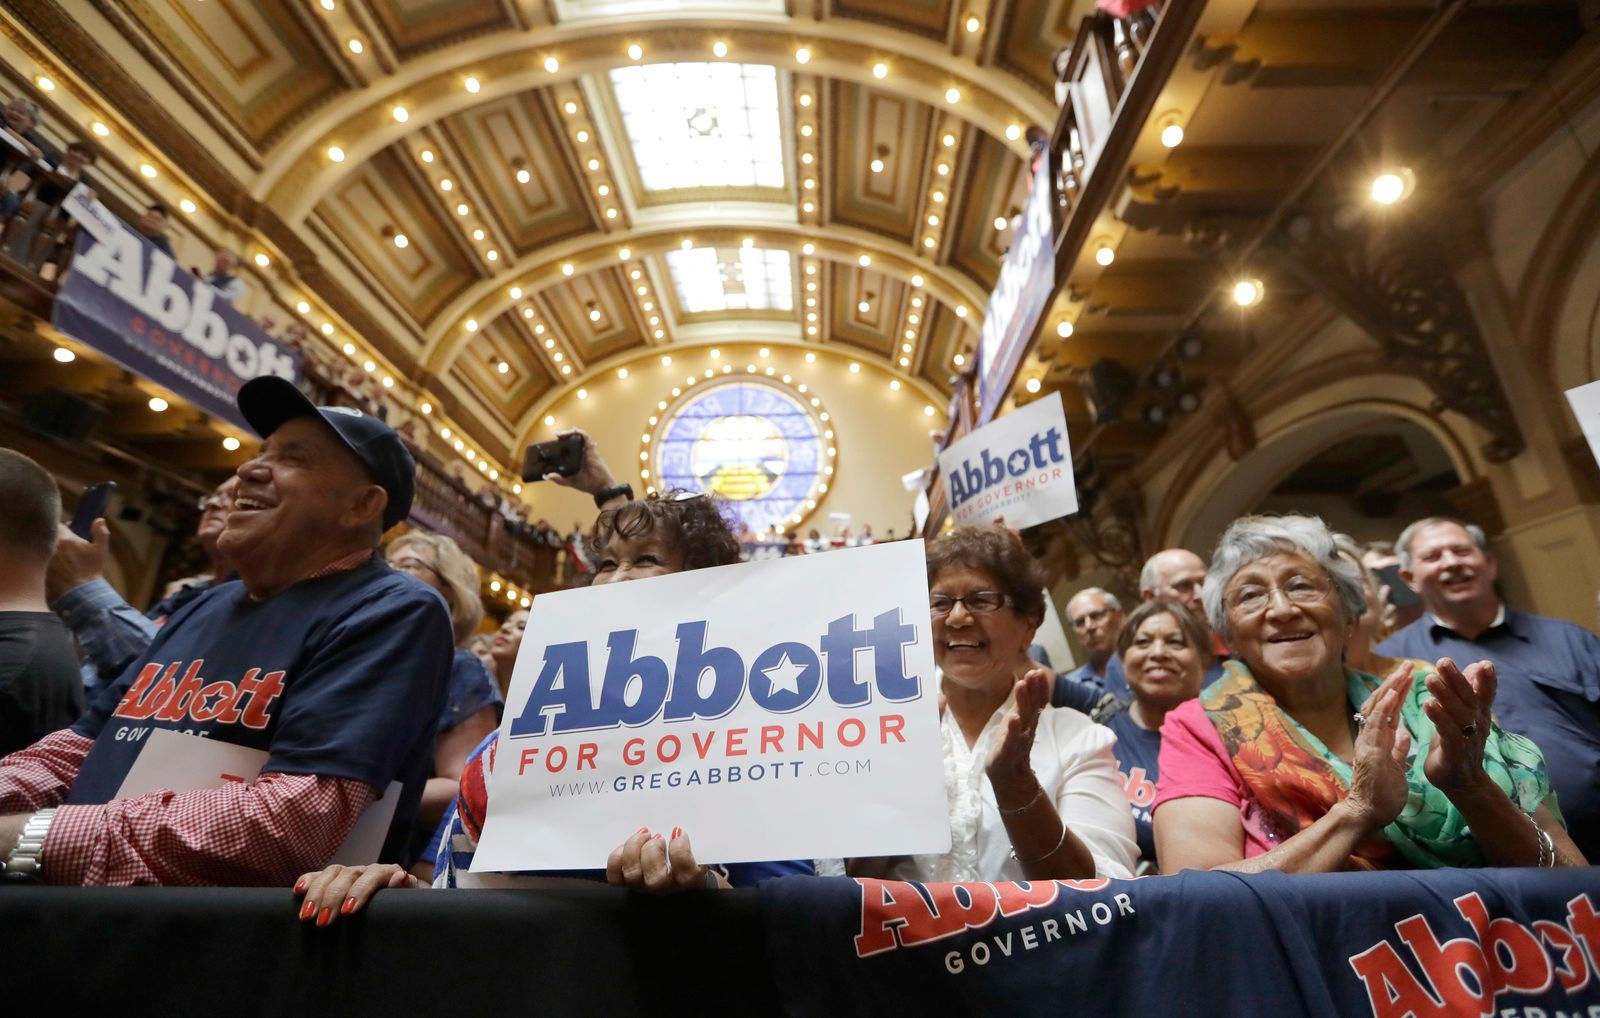 Supporters of Texas Gov. Greg Abbott attend an event where Abbott announced his bid for re-election, Friday, July 14, 2017, in San Antonio. (AP Photo/Eric Gay)